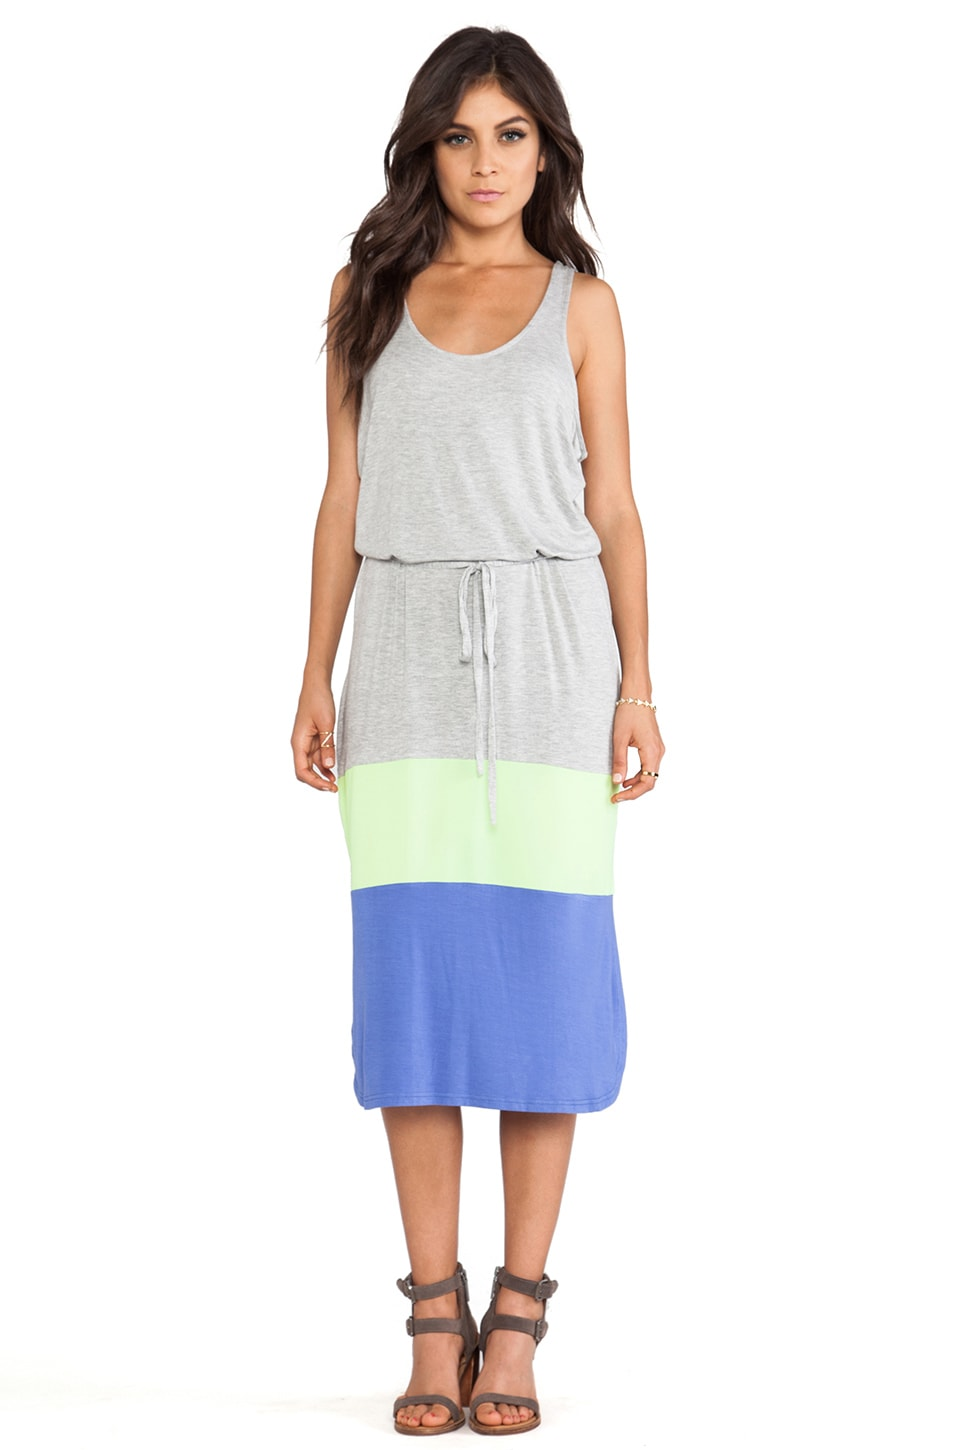 BB Dakota Carla Jersey Maxi Dress in Light Heather Grey